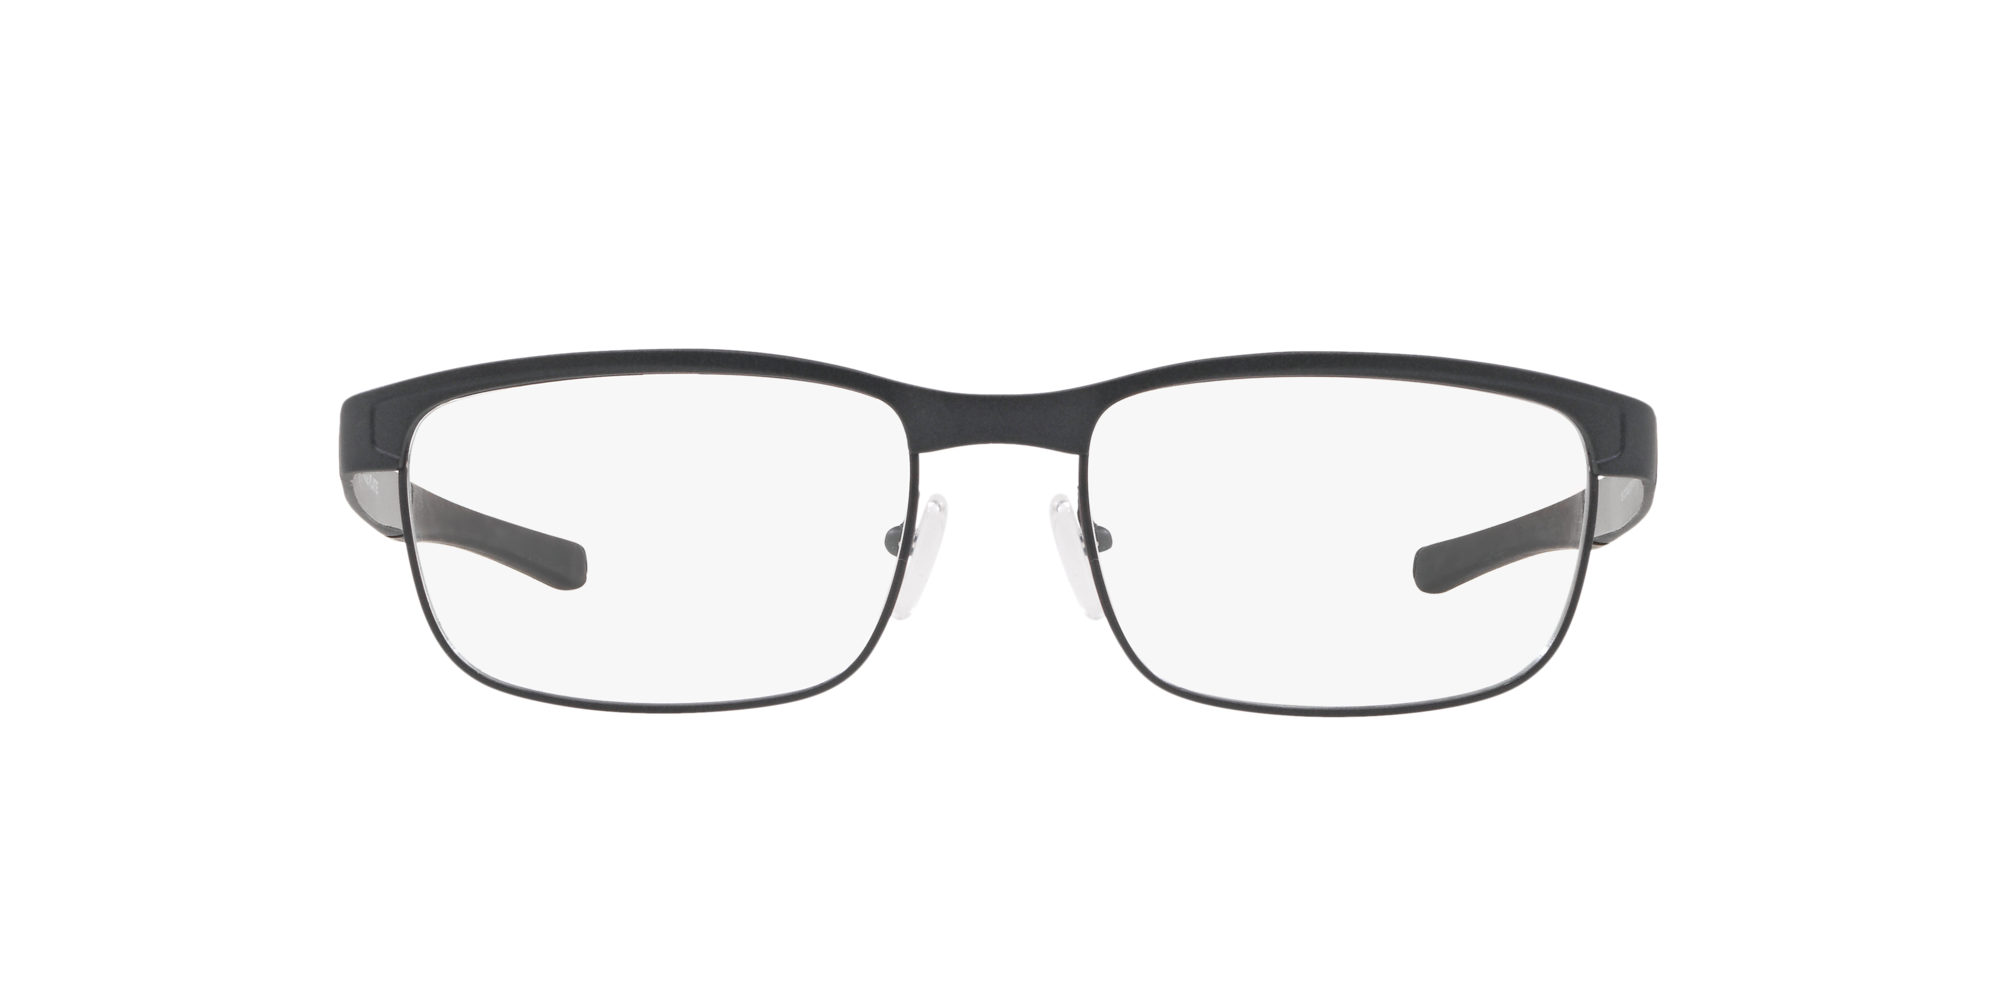 Image for OX5132 SURFACE PLATE from LensCrafters | Glasses, Prescription Glasses Online, Eyewear